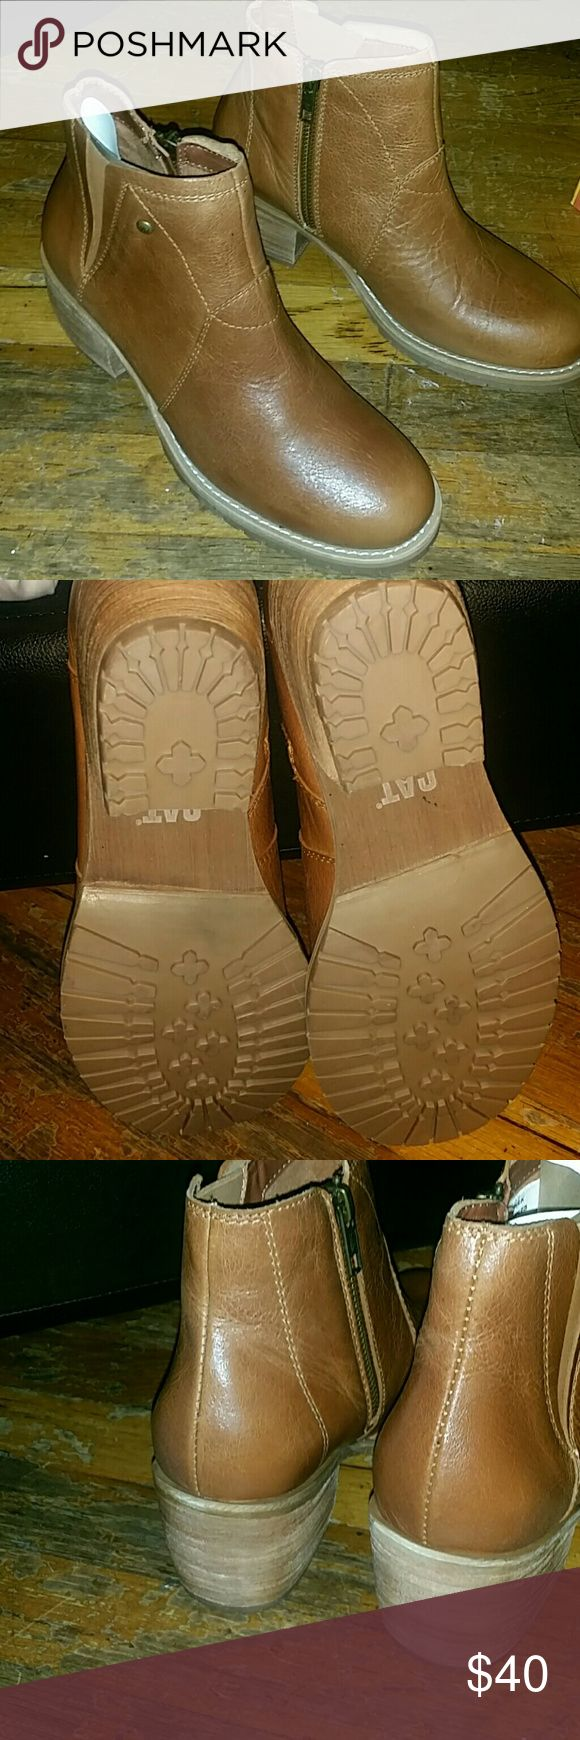 Women's tan CATerpillar leather booties Cute Women's CATerpillar booties. Tan. Leather. Size 7. Sample. Never been worn. In excellent condition. Aside from natural leather variations, no signs of wear. Caterpillar Shoes Ankle Boots & Booties